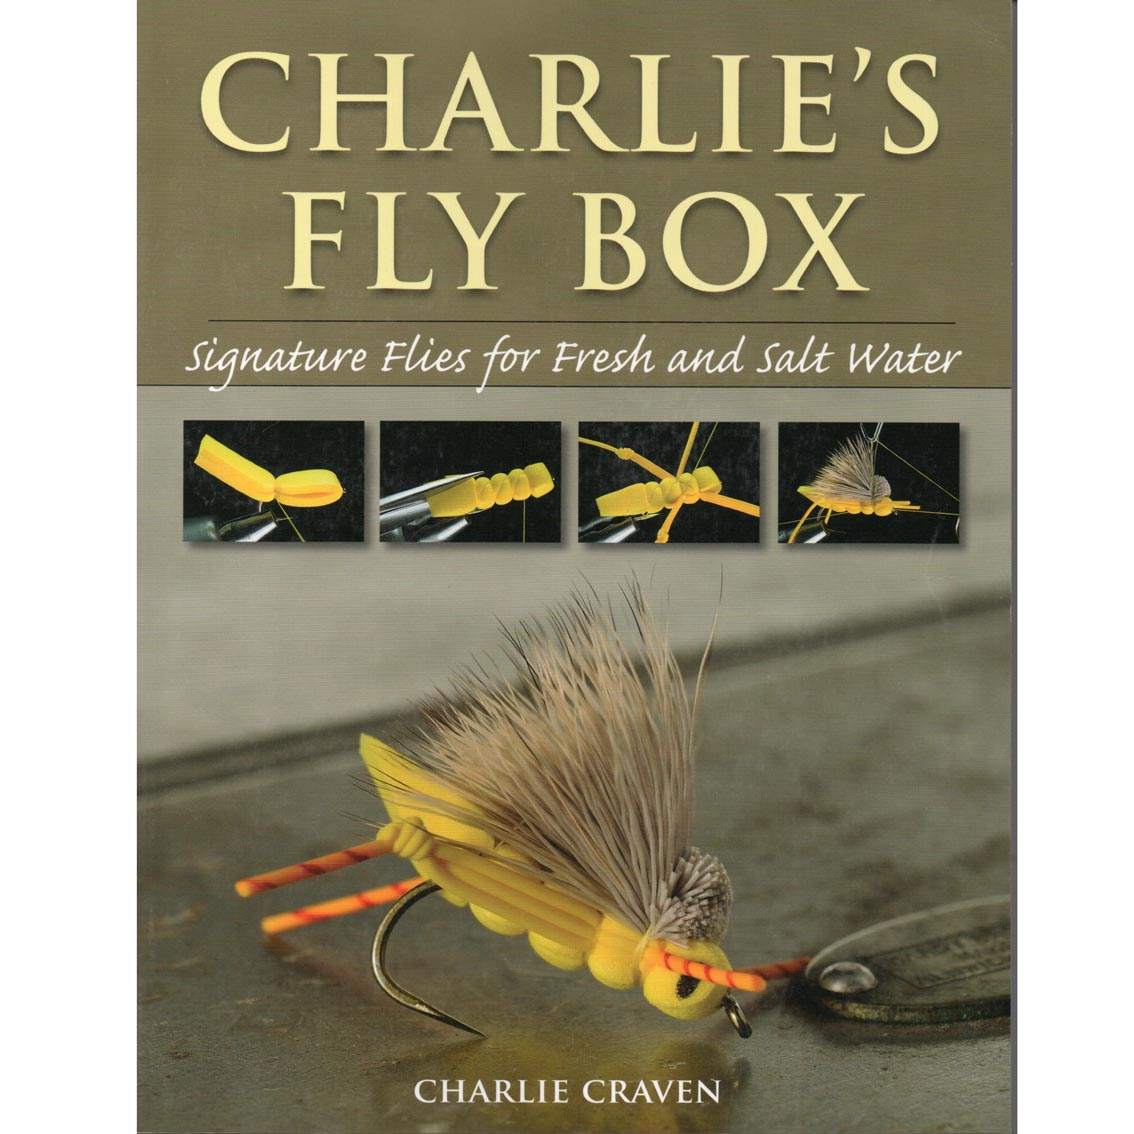 Livro Charlie's Fly Box (Charlie Craven)